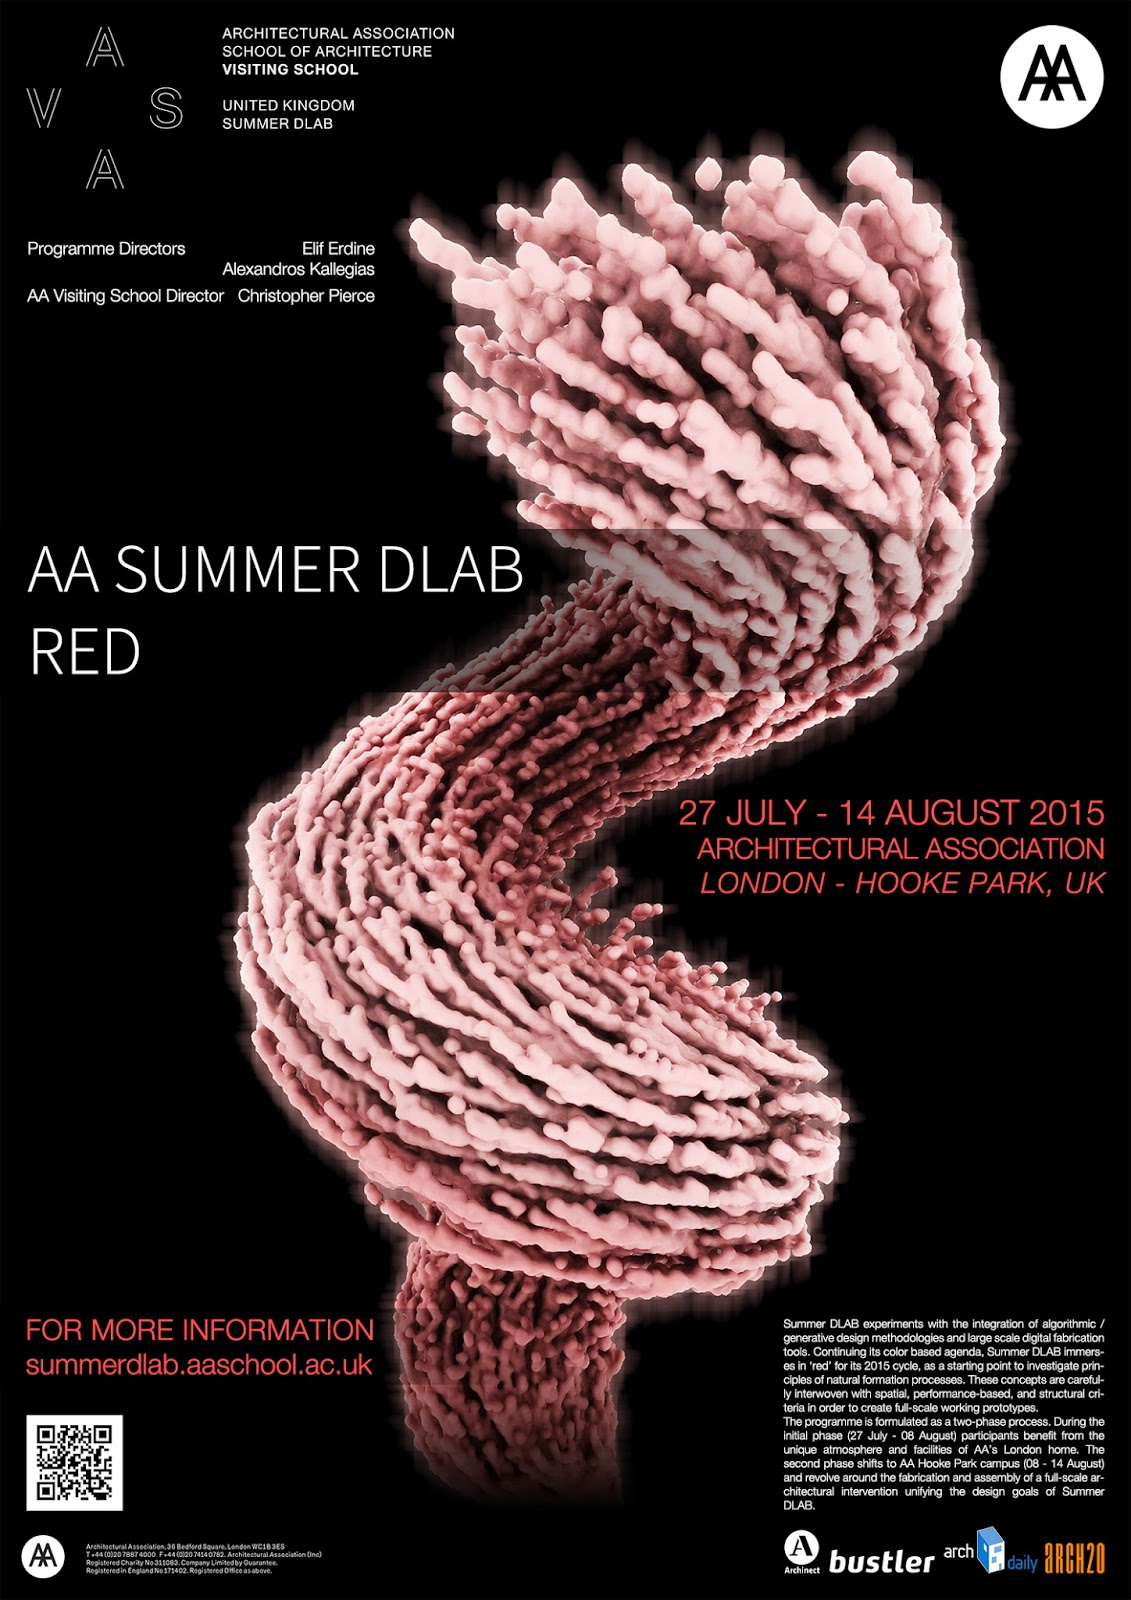 AA Summer DLAB 12 London And Hooke Park News McNeel Interesting Summer Dlab 2015 Red